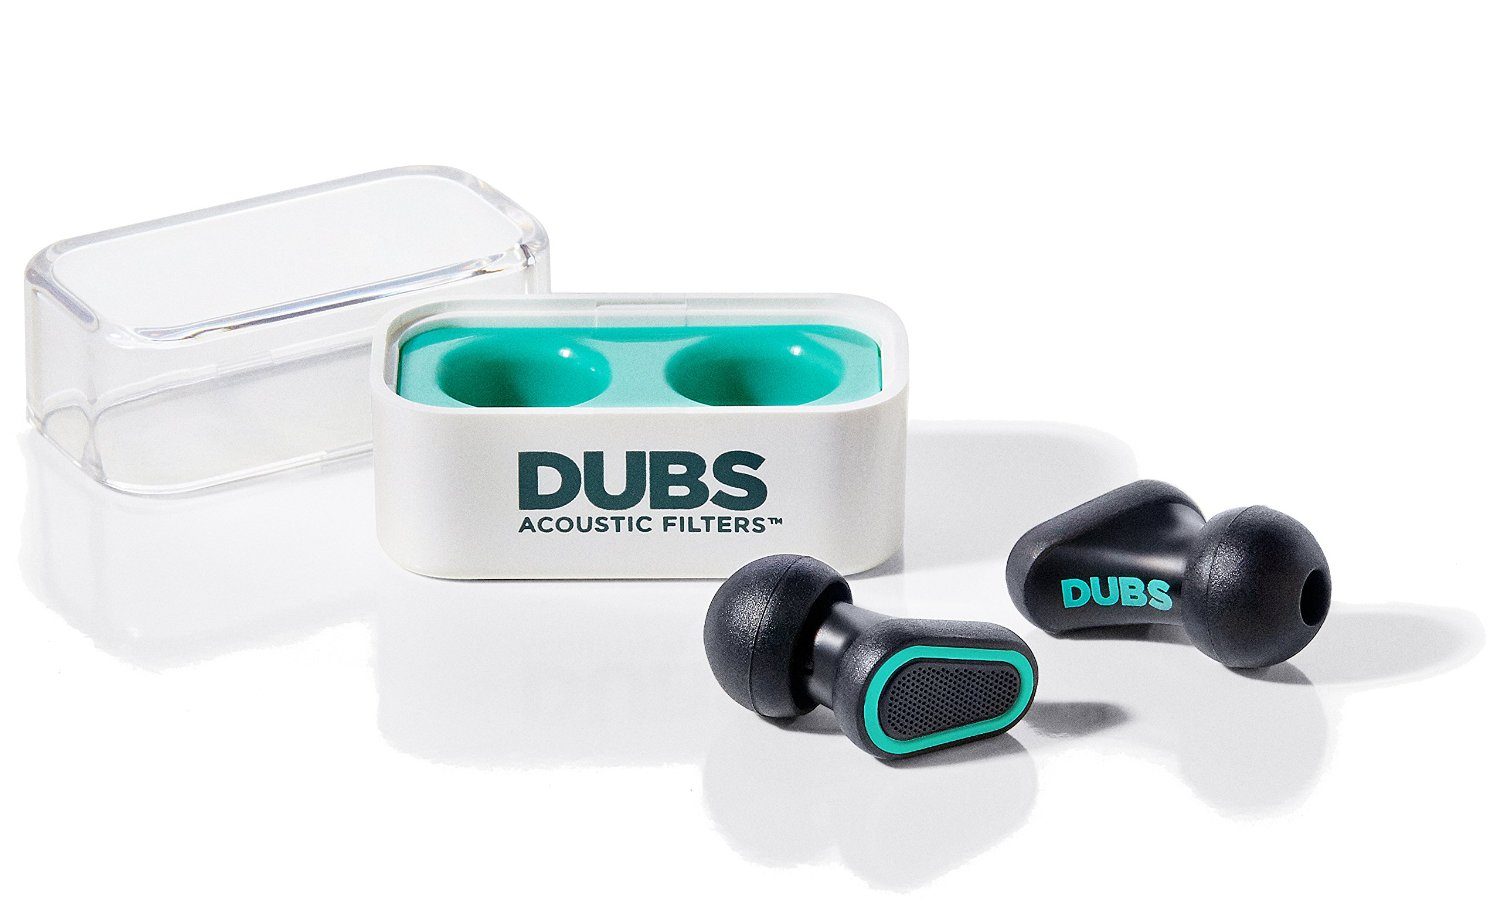 DUBS Advanced Tech Hearing Protection